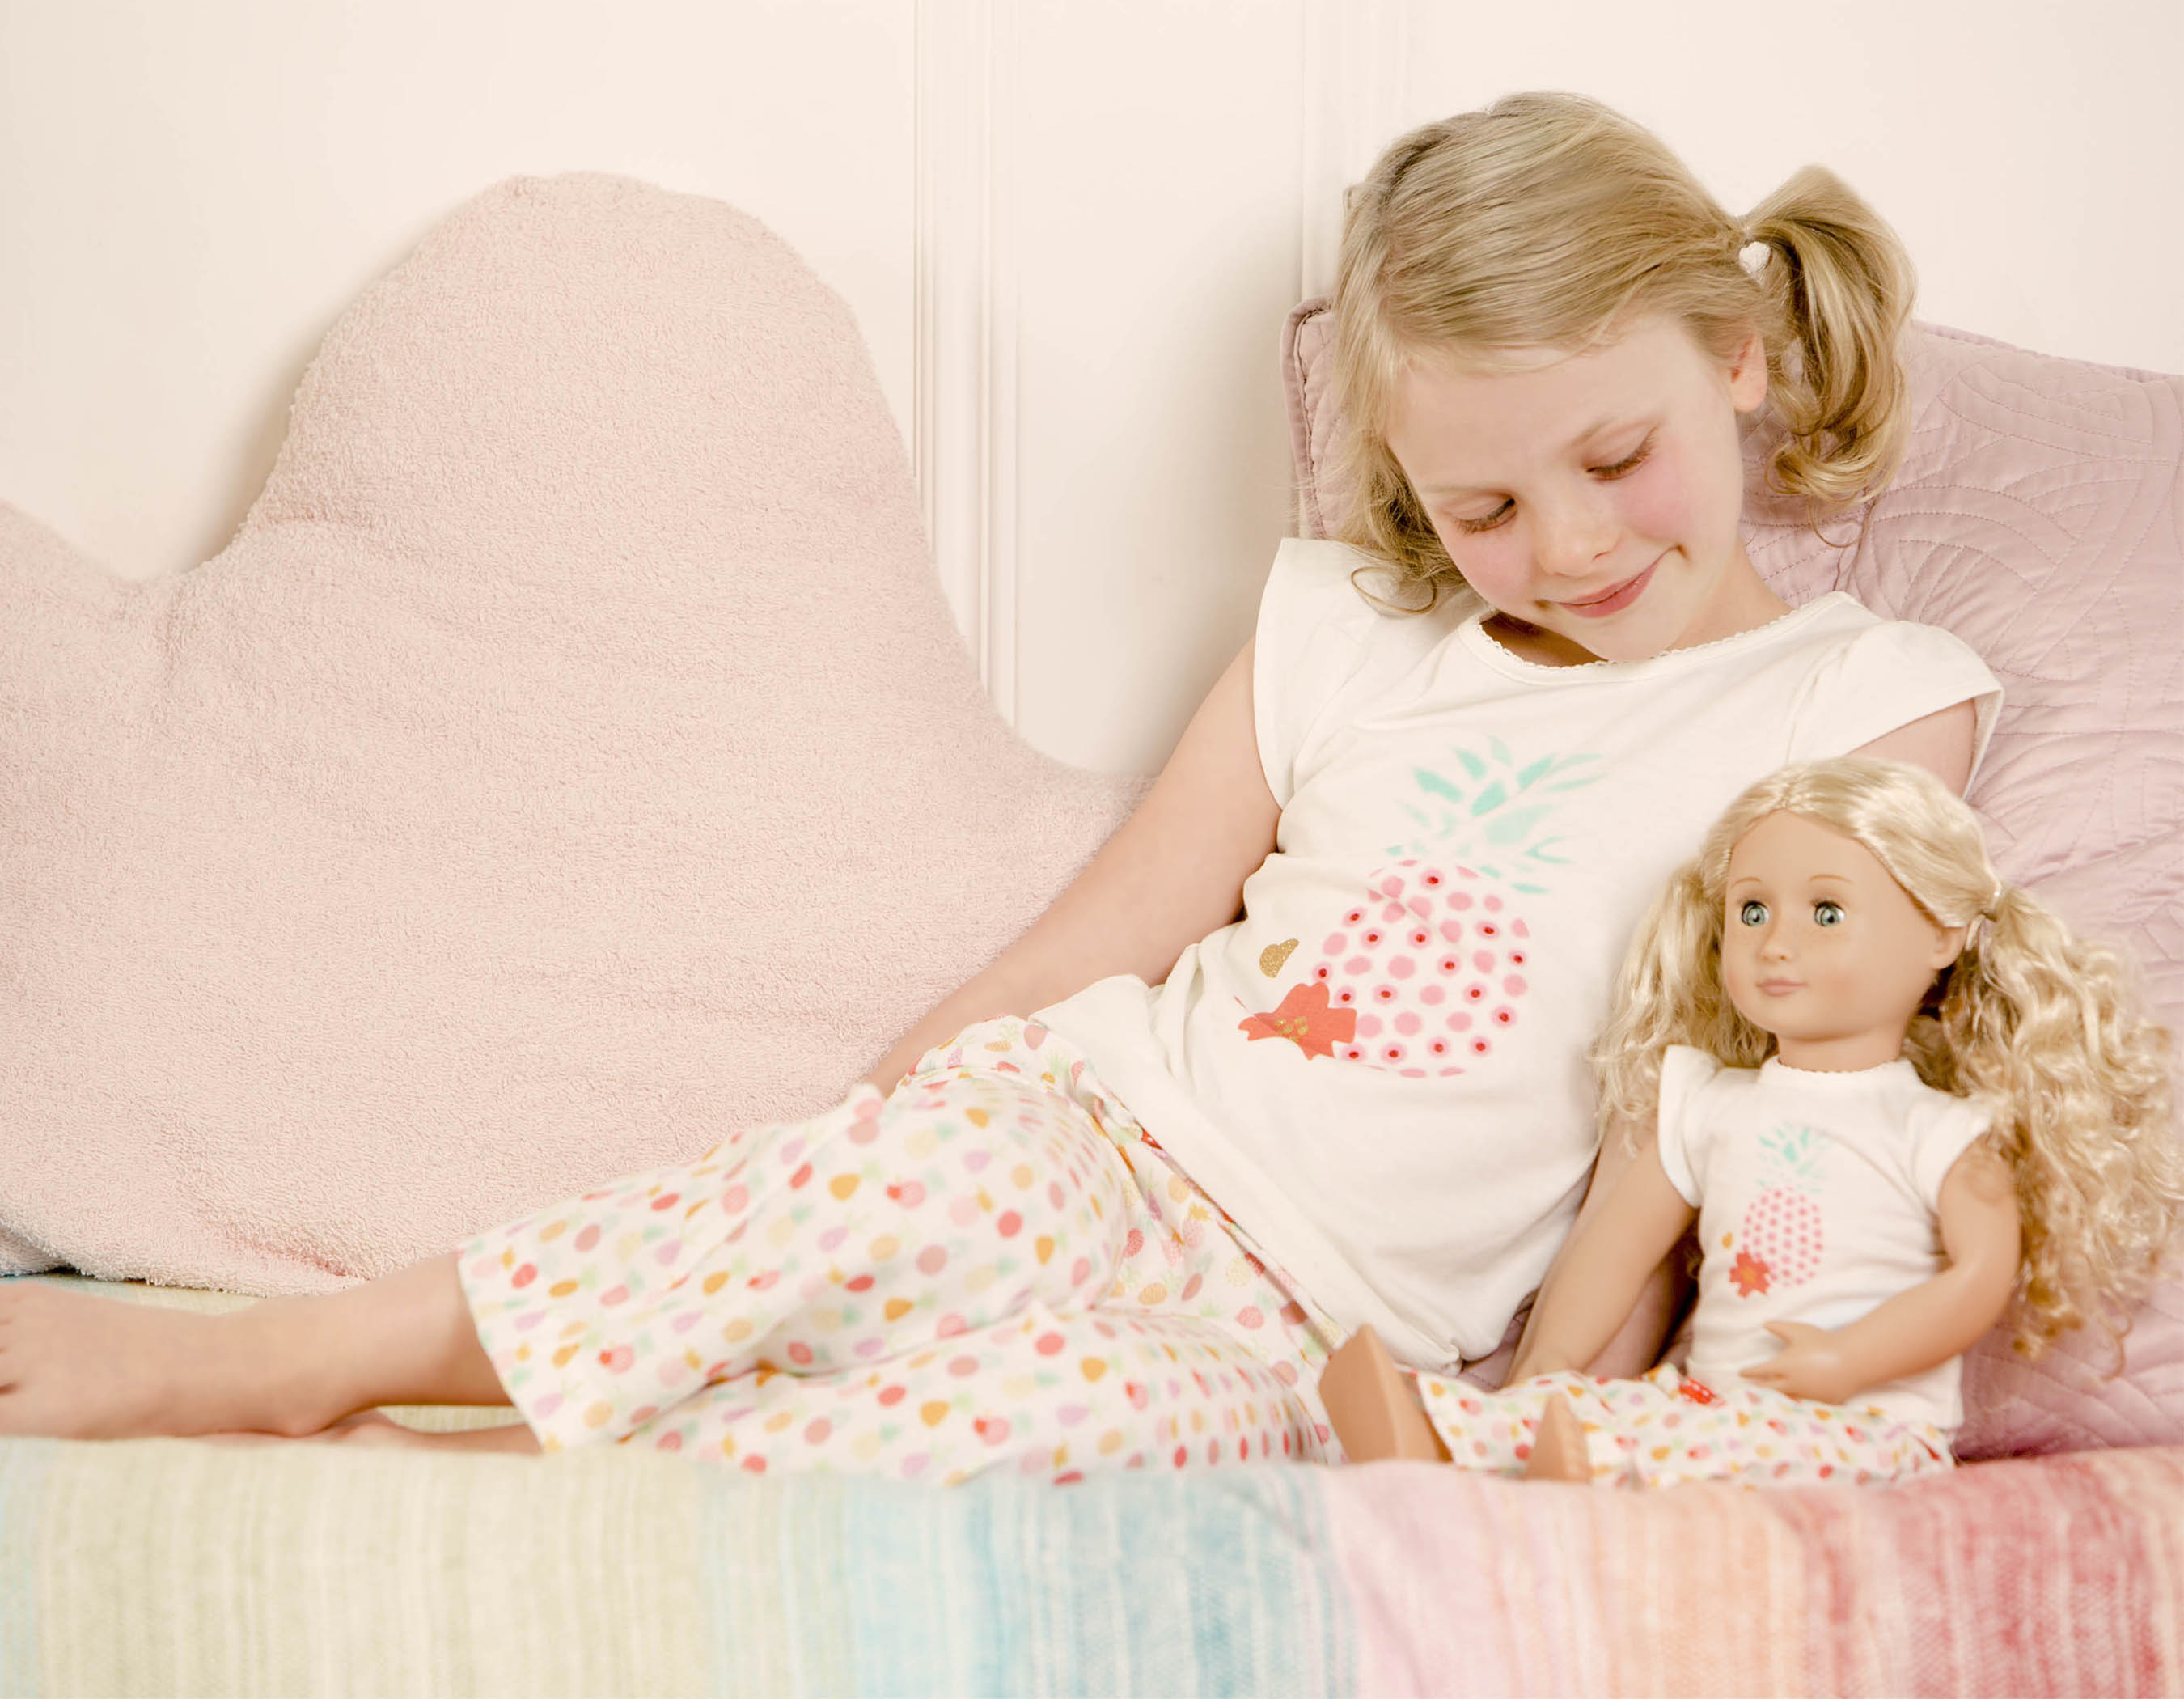 Gift Guide - Sleepover Theme Dolls and Accessories